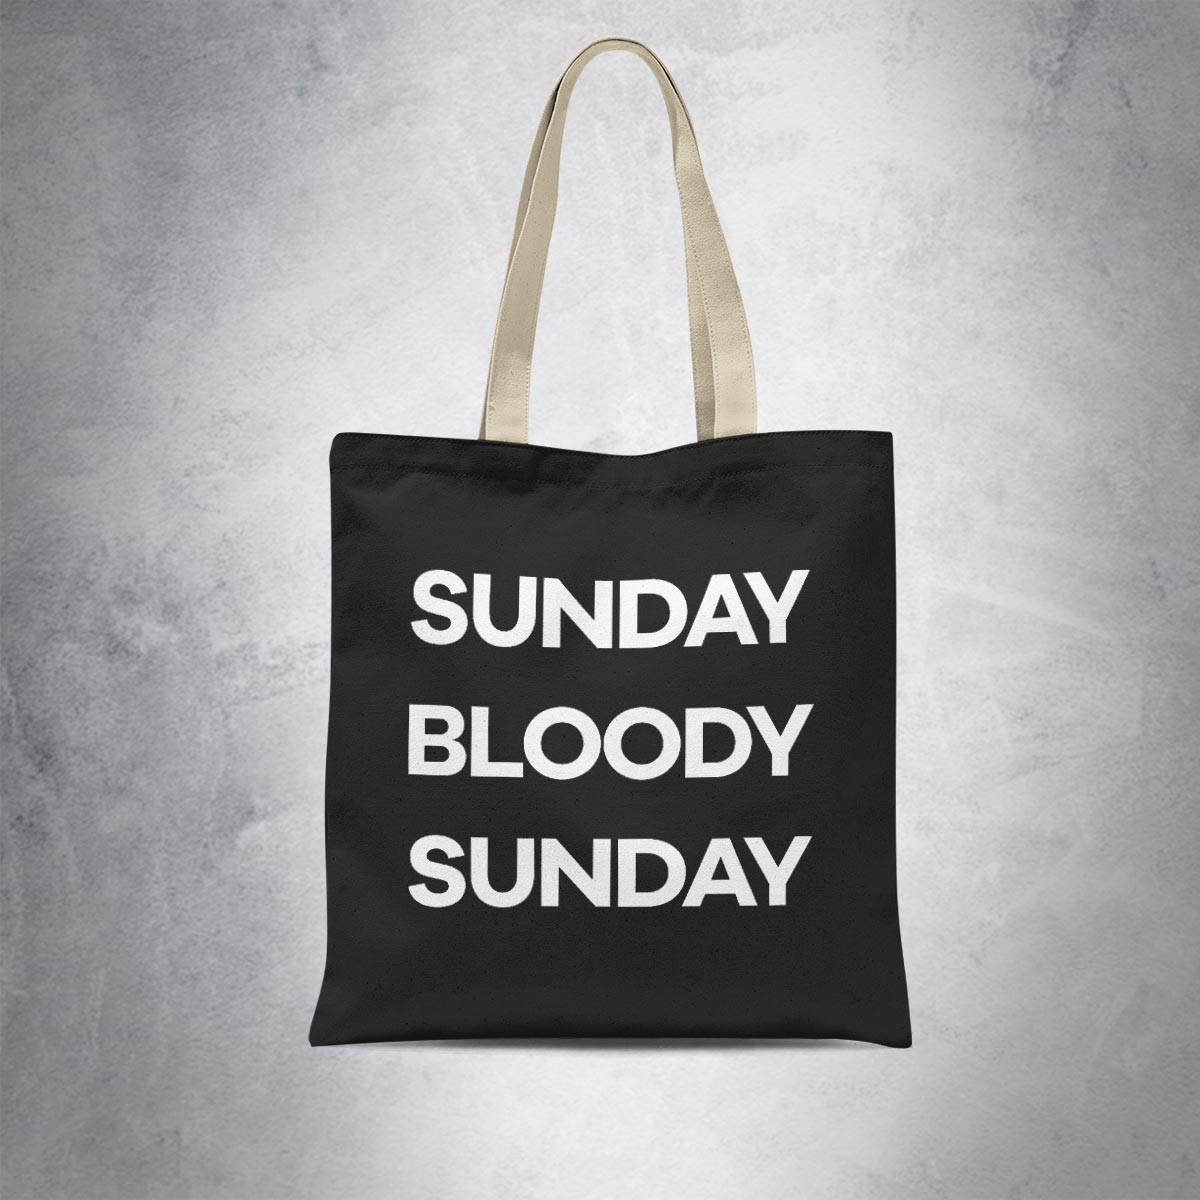 U2 - Sunday Bloody Sunday